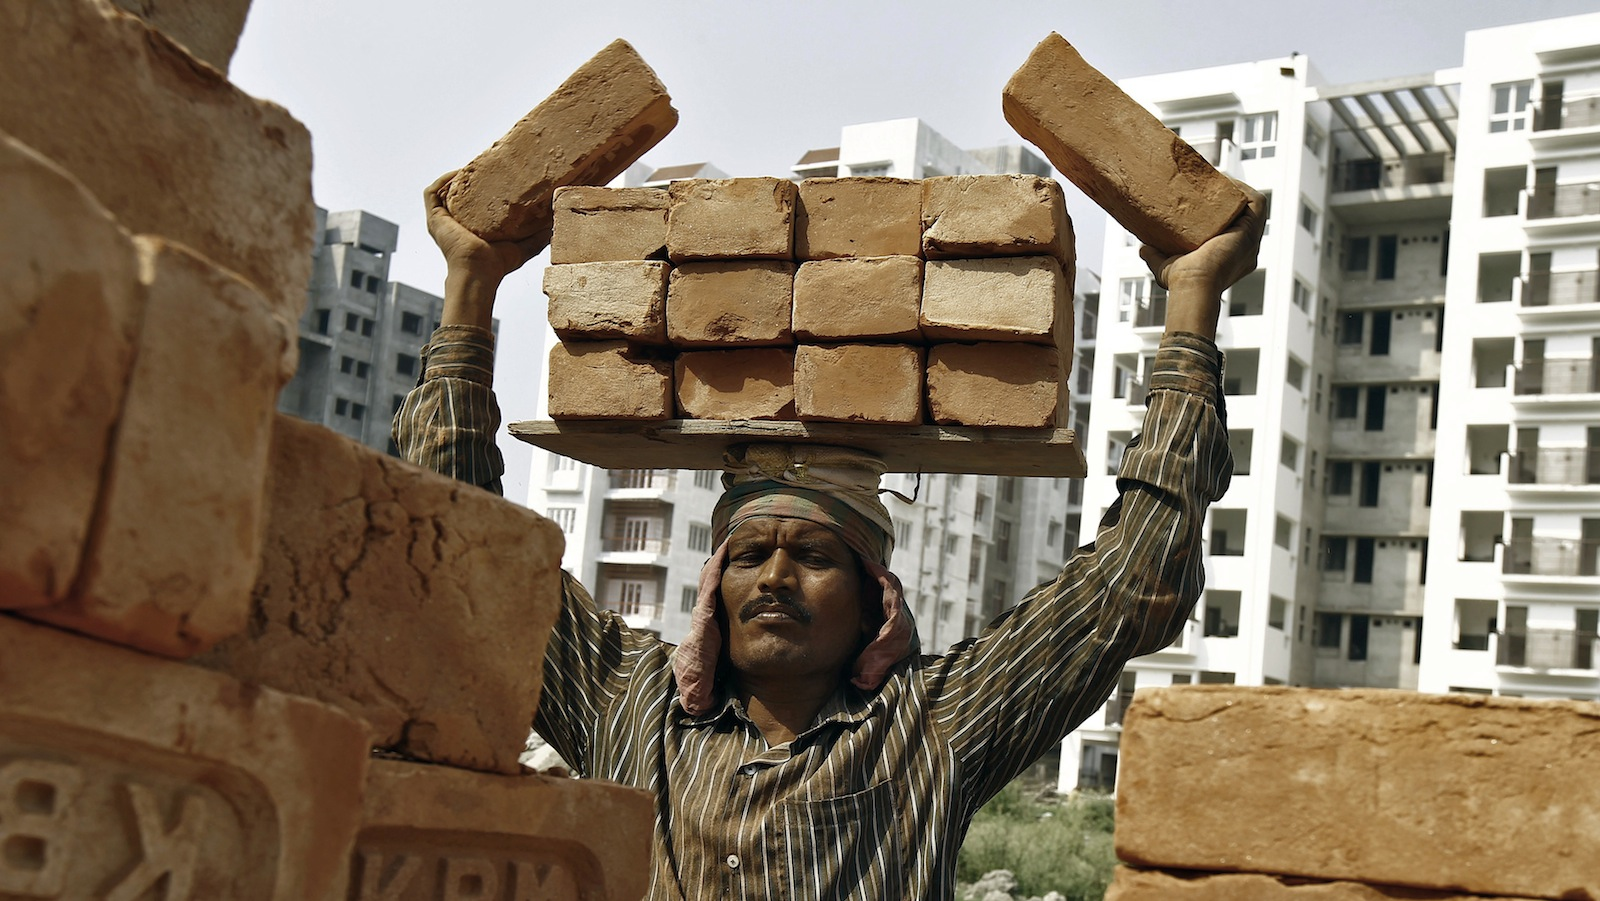 A labourer stacks bricks on his head at the construction site of a residential complex in Kolkata February 28, 2015. India's Finance Minister Arun Jaitley on Saturday announced a budget aimed at high growth, saying the pace of cutting the fiscal deficit would slow as he seeks to boost investment and ensure that ordinary people benefit.